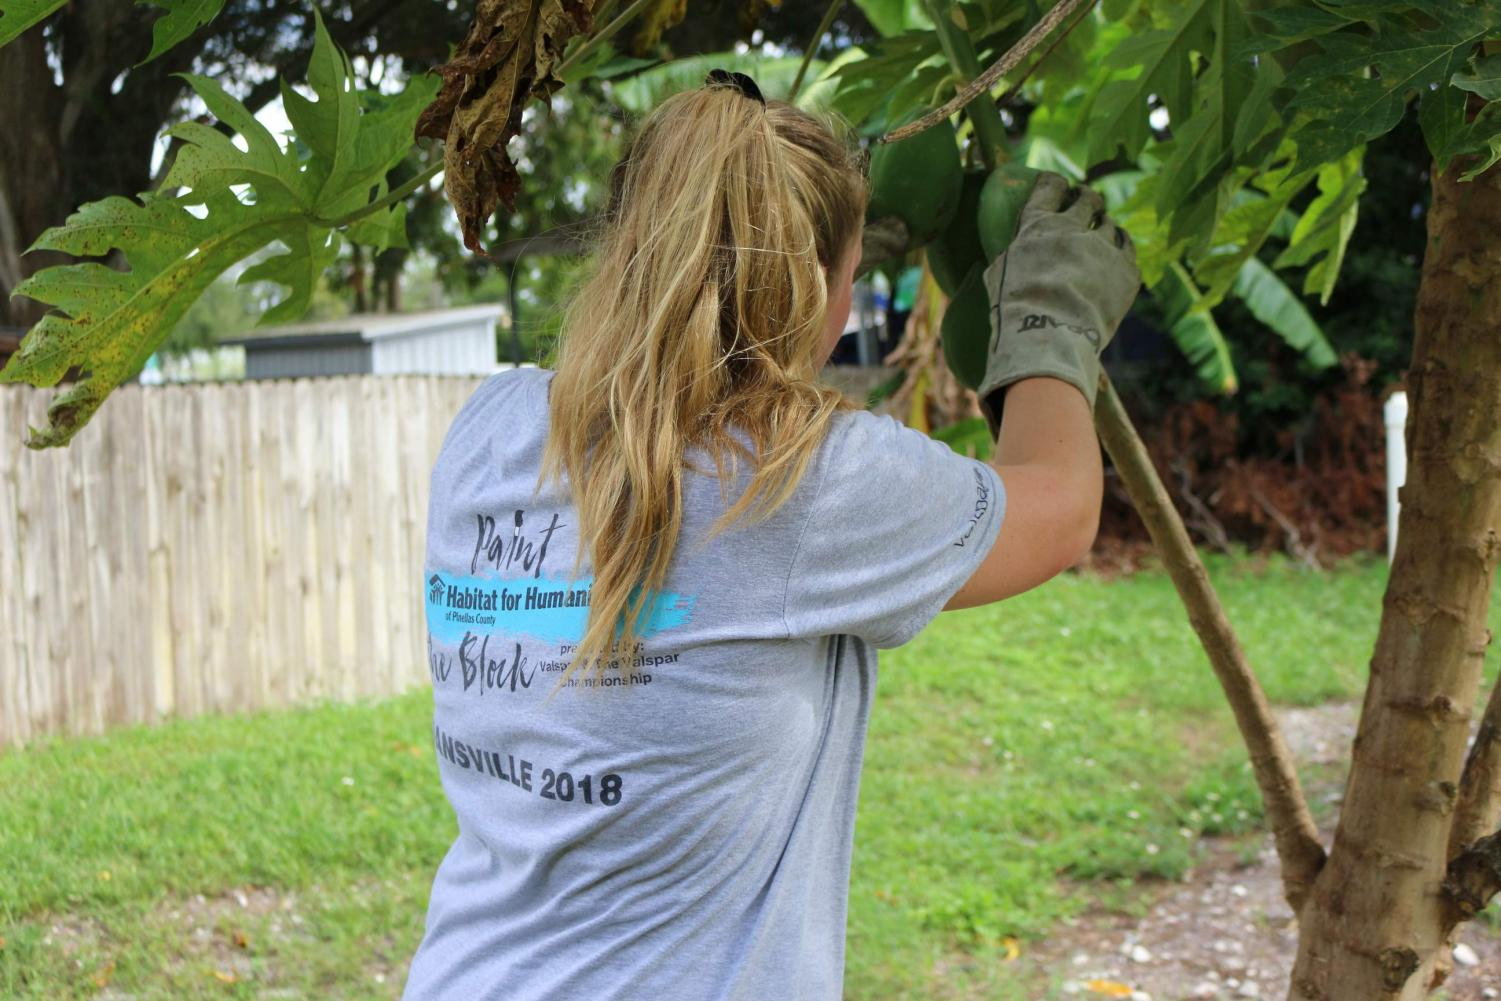 Erin+Behrmann+%28%2722%29+checks+to+see+if+the+papayas+are+ripe+enough+to+pick+off+of+the+tree.